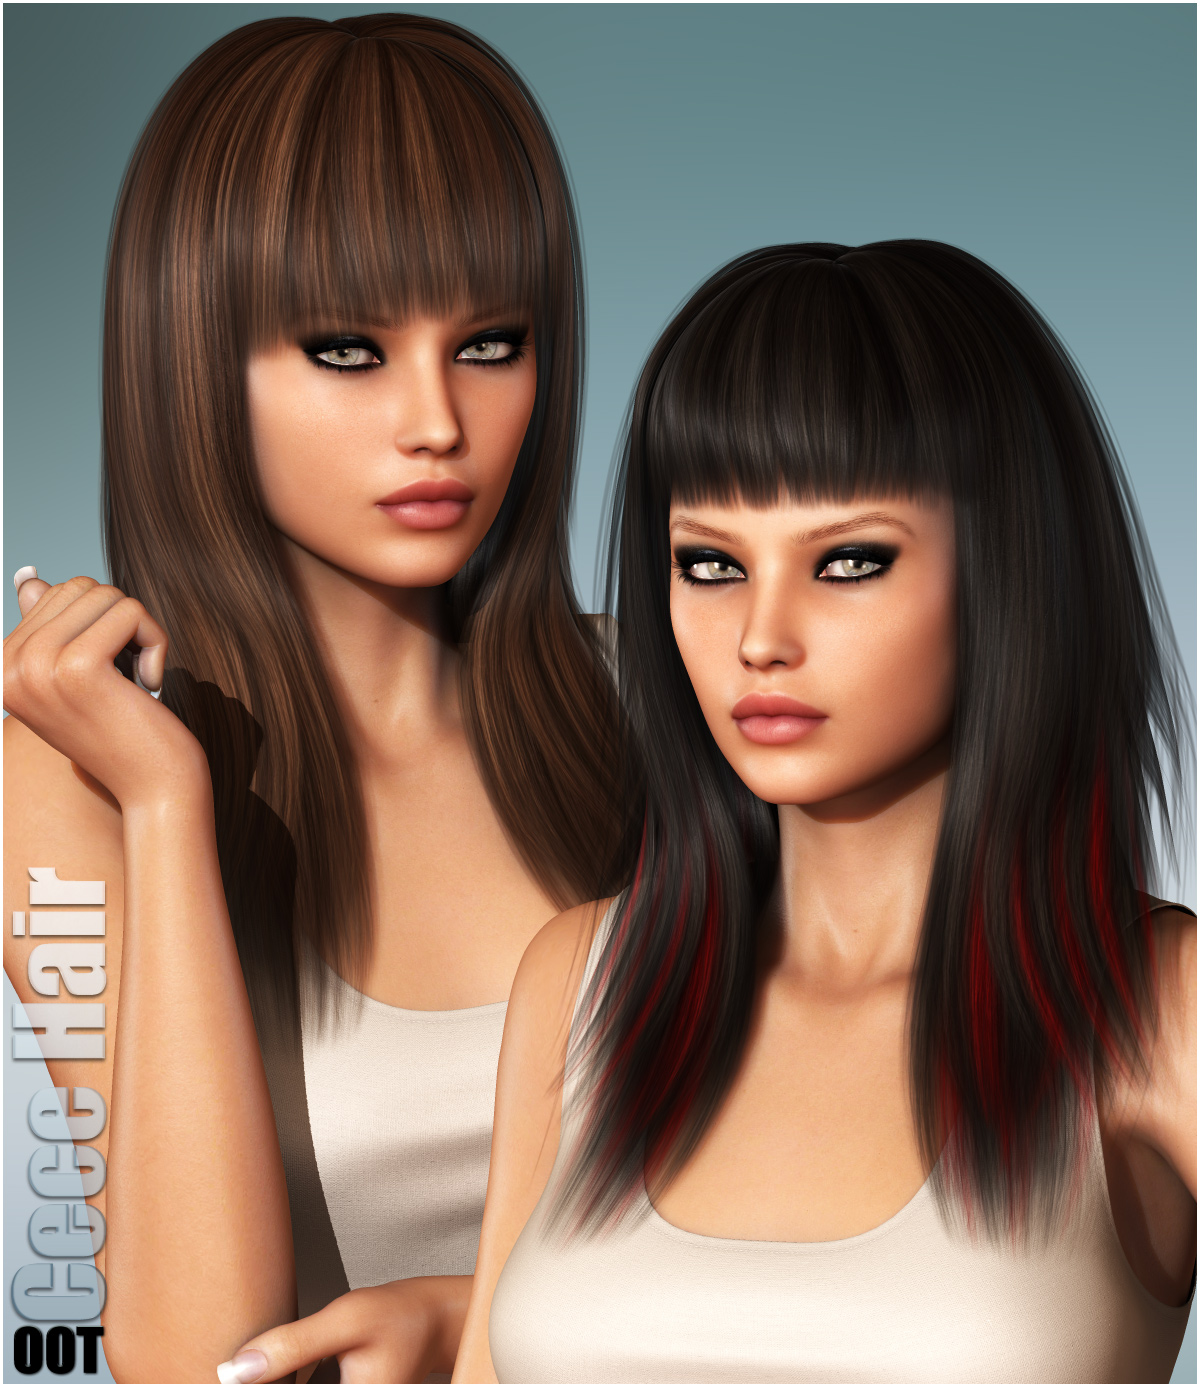 Cece Hair and OOT Hairblending by outoftouch